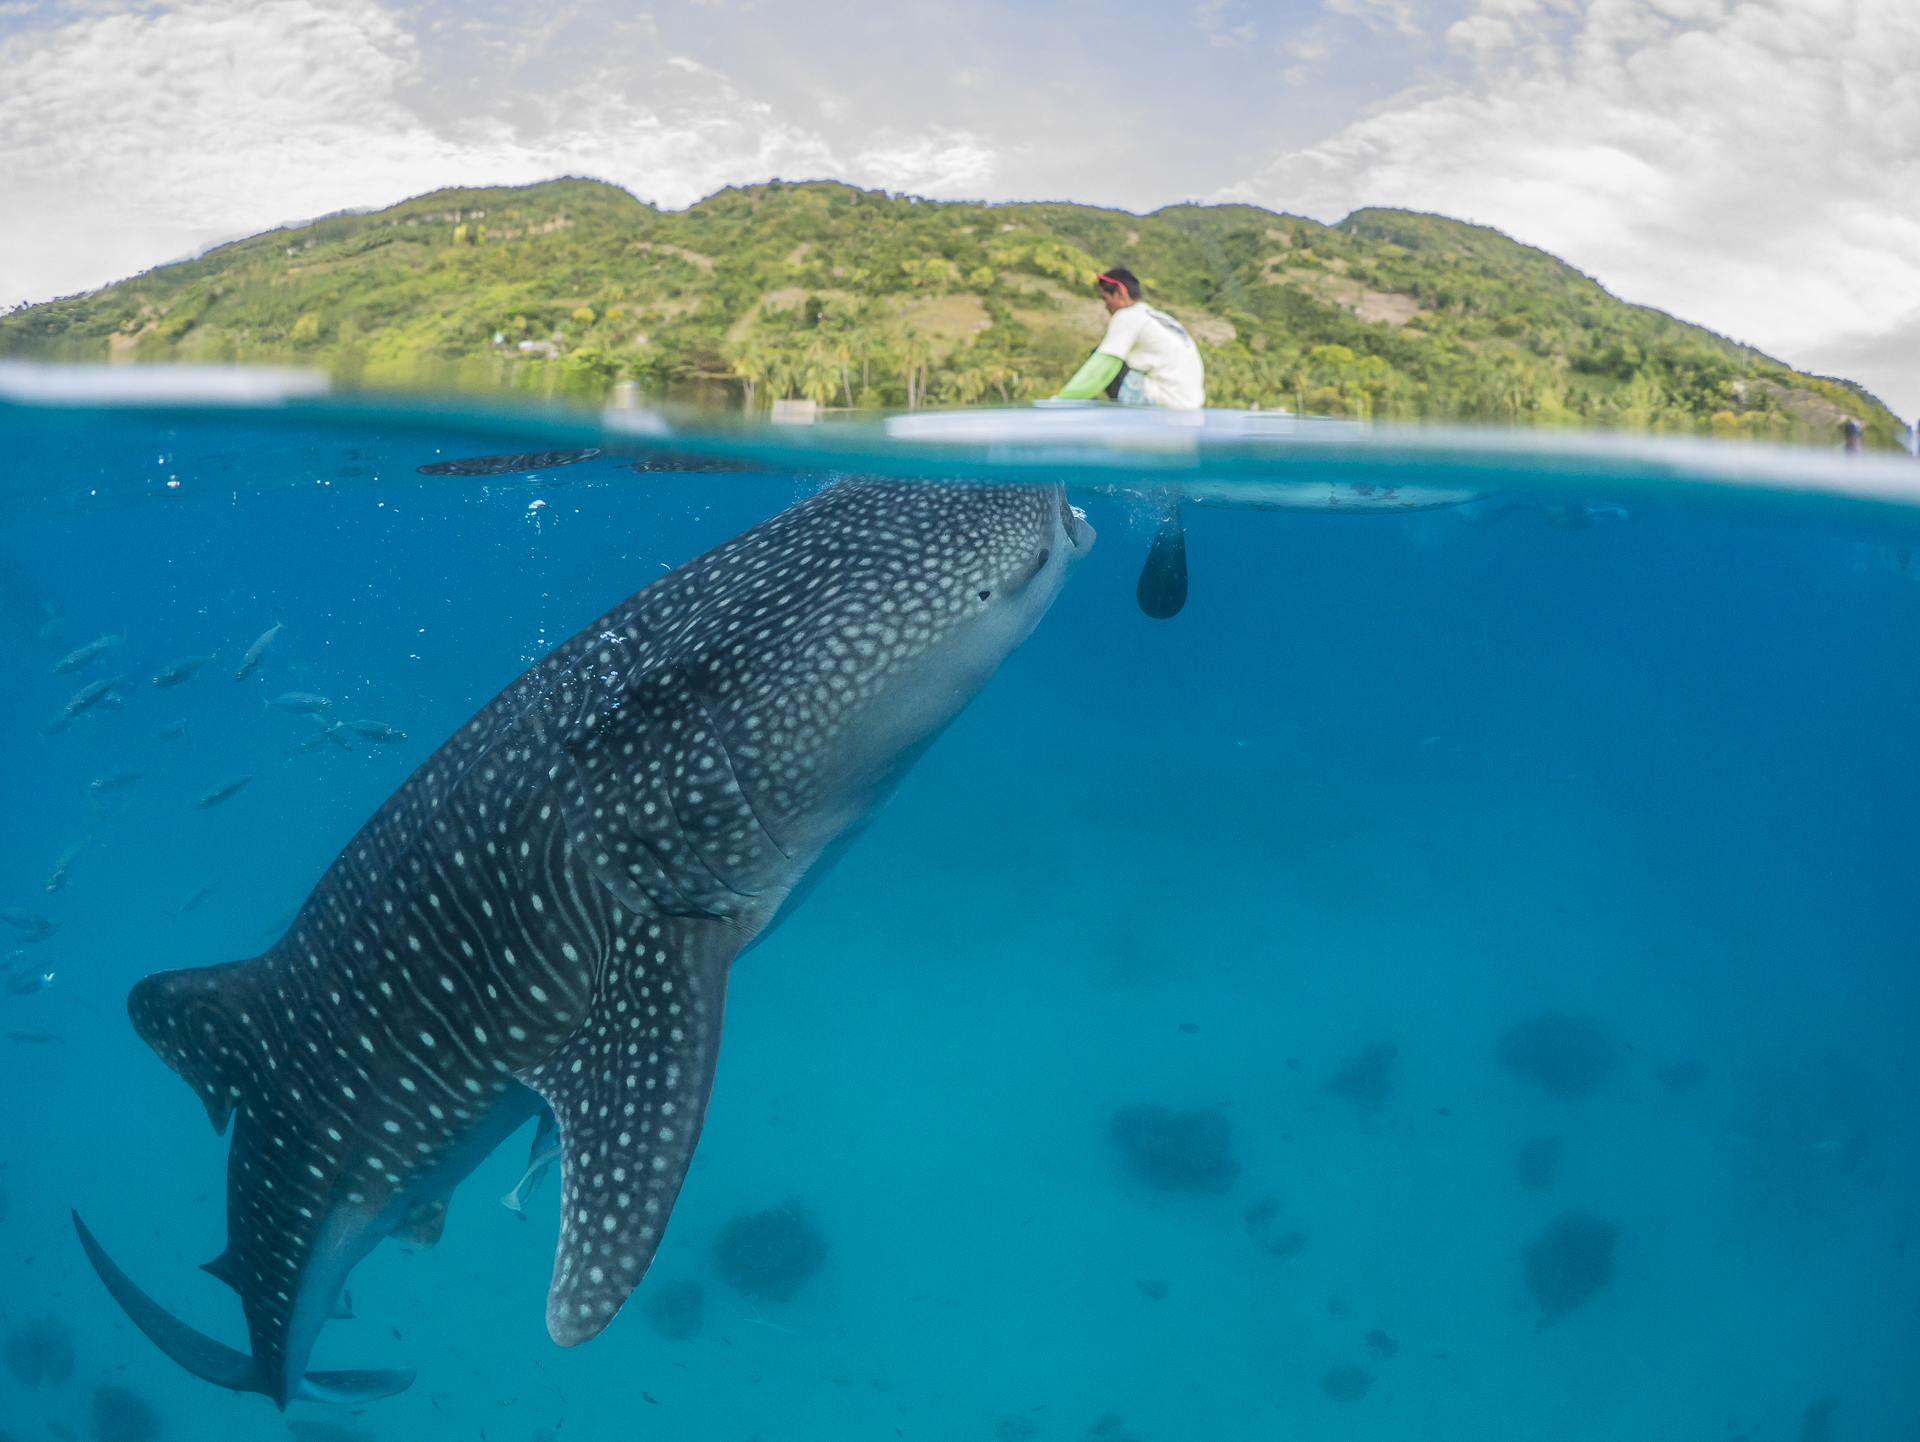 Fisherman feeding a Whale Shark off Oslob. in the Phillipines.